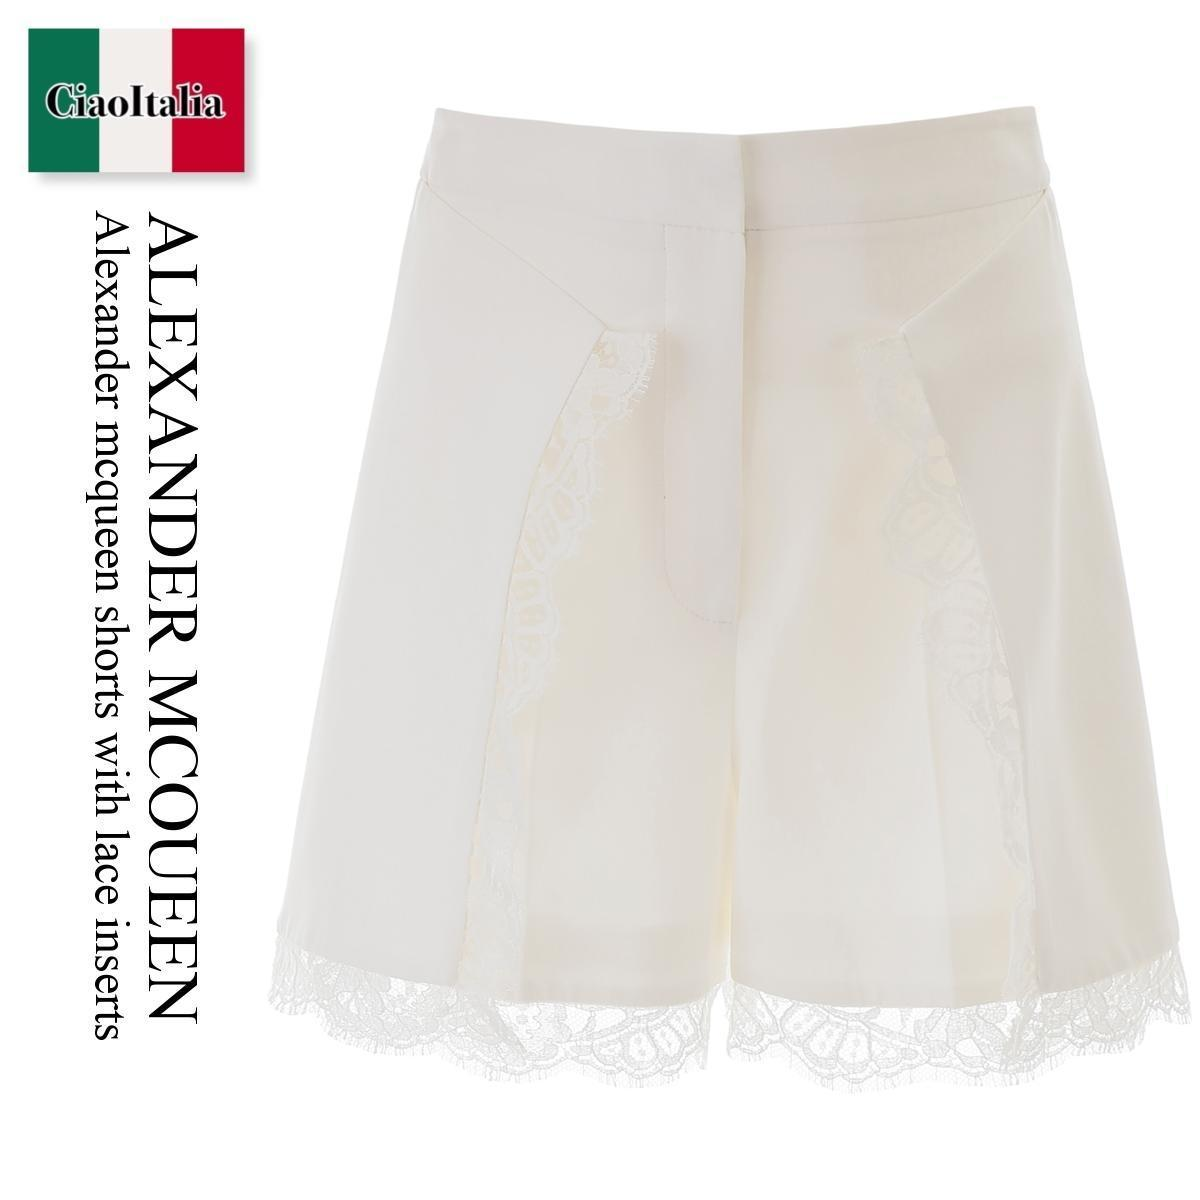 ALEXANDER MCQUEEN Shorts With Lace Inserts (alexander mcqueen/ショートパンツ) ALEXANDER MCQUEEN SHORTS WITH LACE INSER  610470 QEAAA  610470 QEAAA 9007